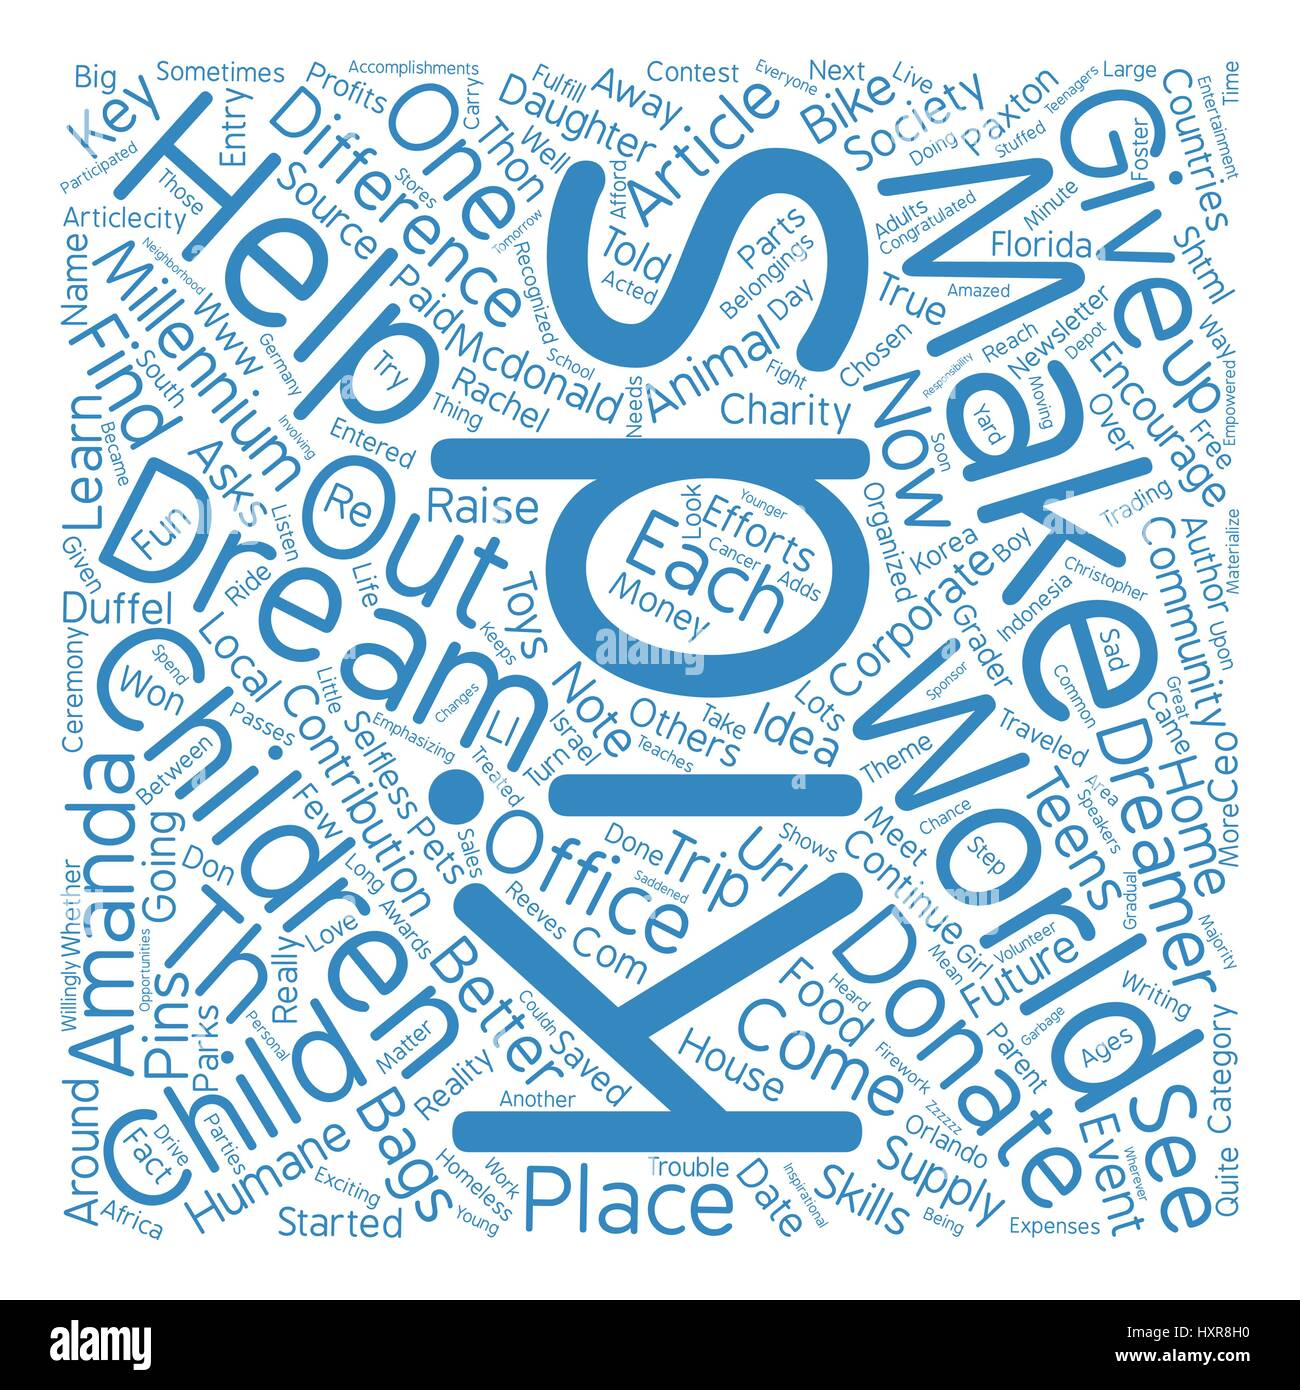 Awesome Gift Ideas For The Teenage Dude text background word cloud concept Stock Vector